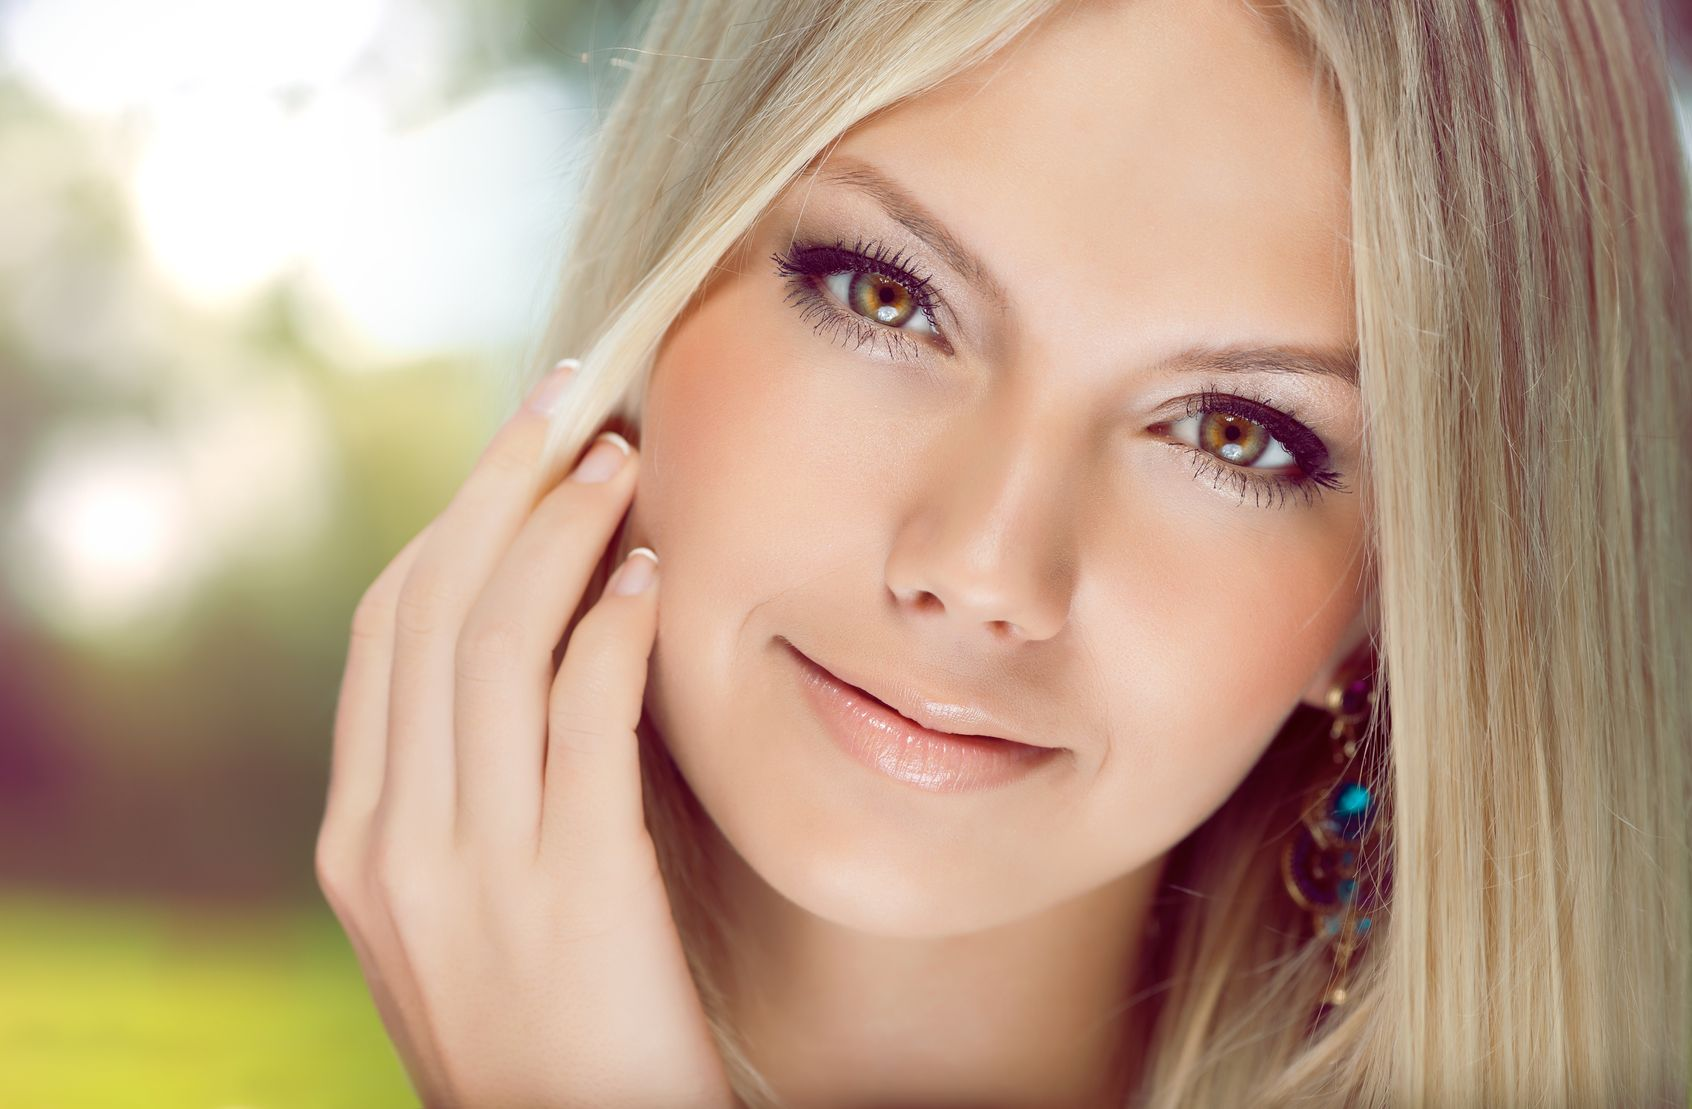 Revision Rhinoplasty in NJ: The Top 5 Questions to Ask Your Surgeon